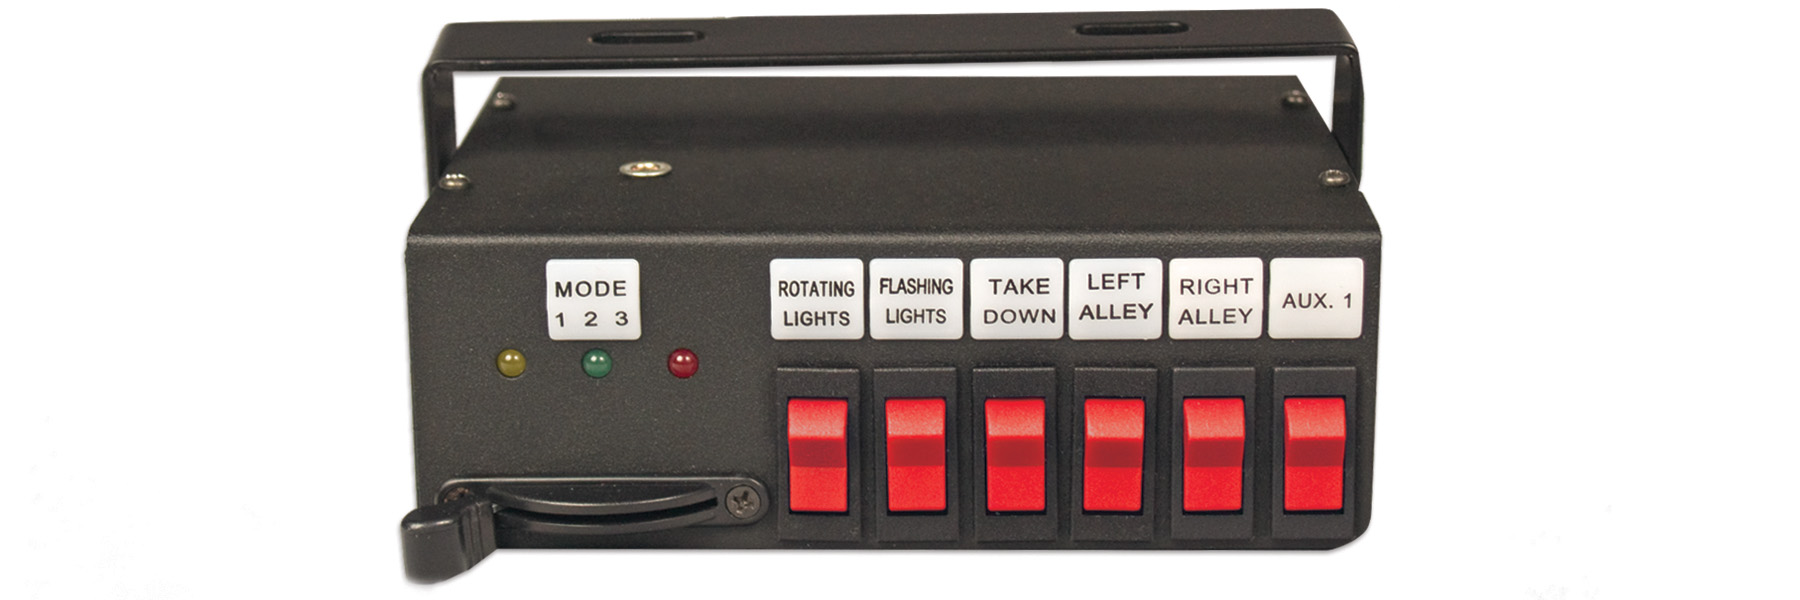 900 Series 9 Function Switch Product Image